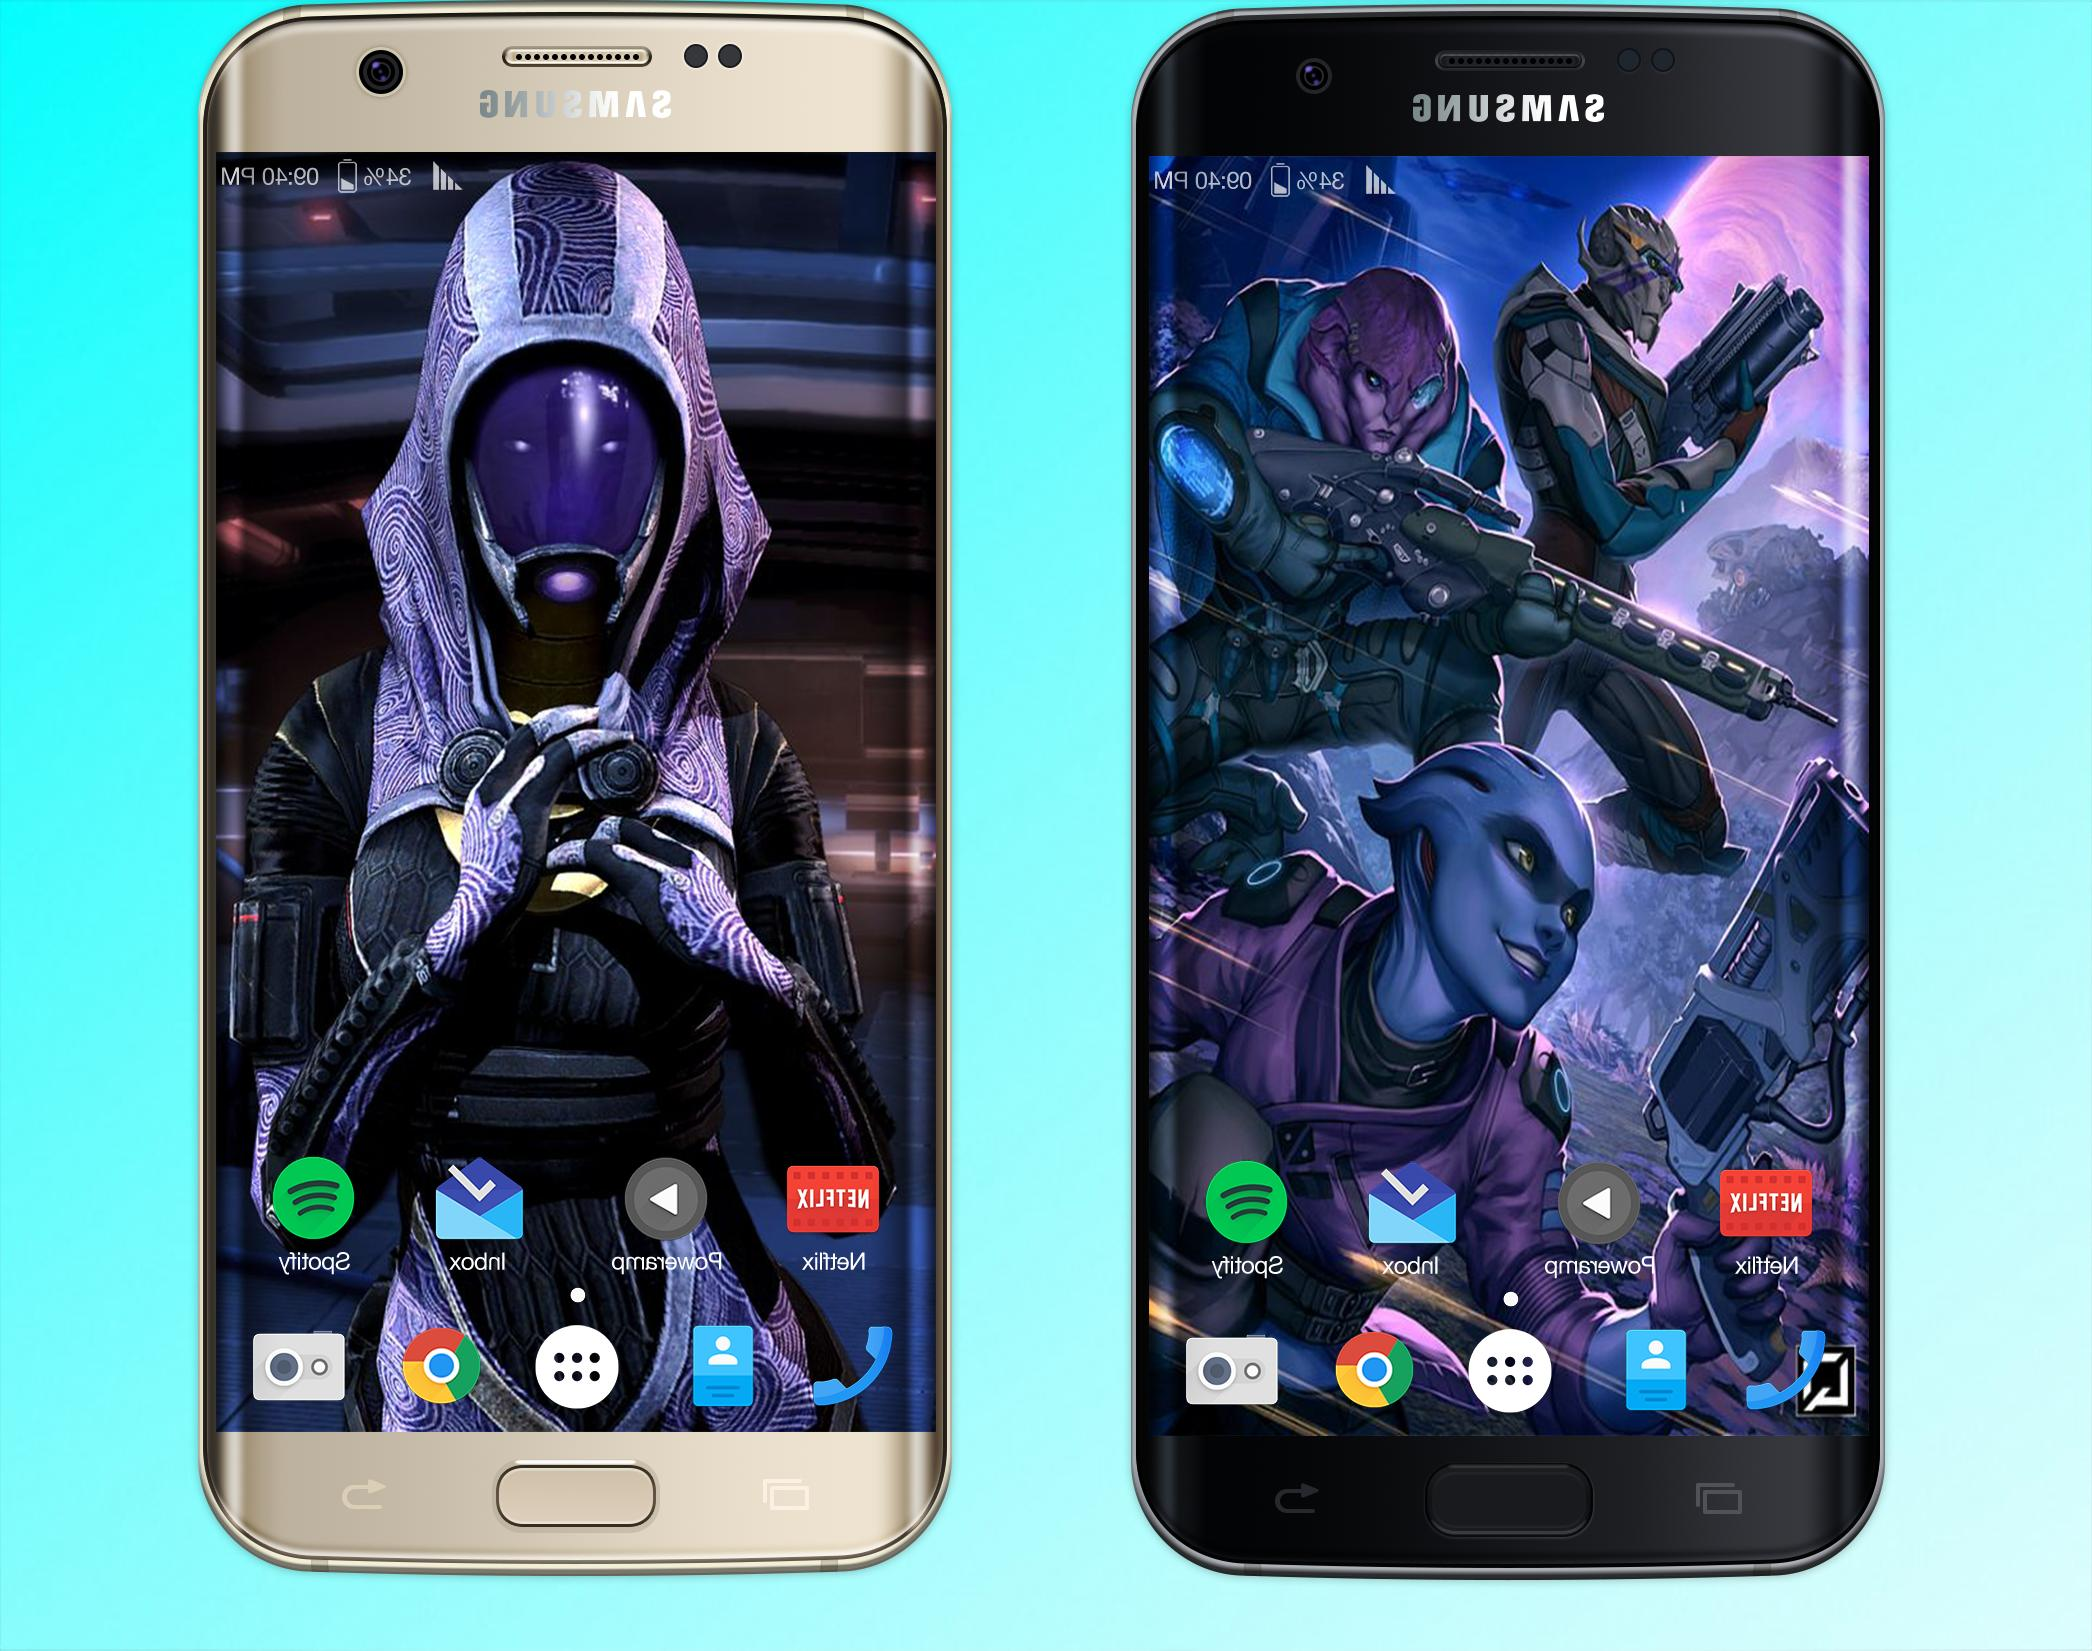 Wallpapers For Mass Effect Andromeda Fans For Android Apk